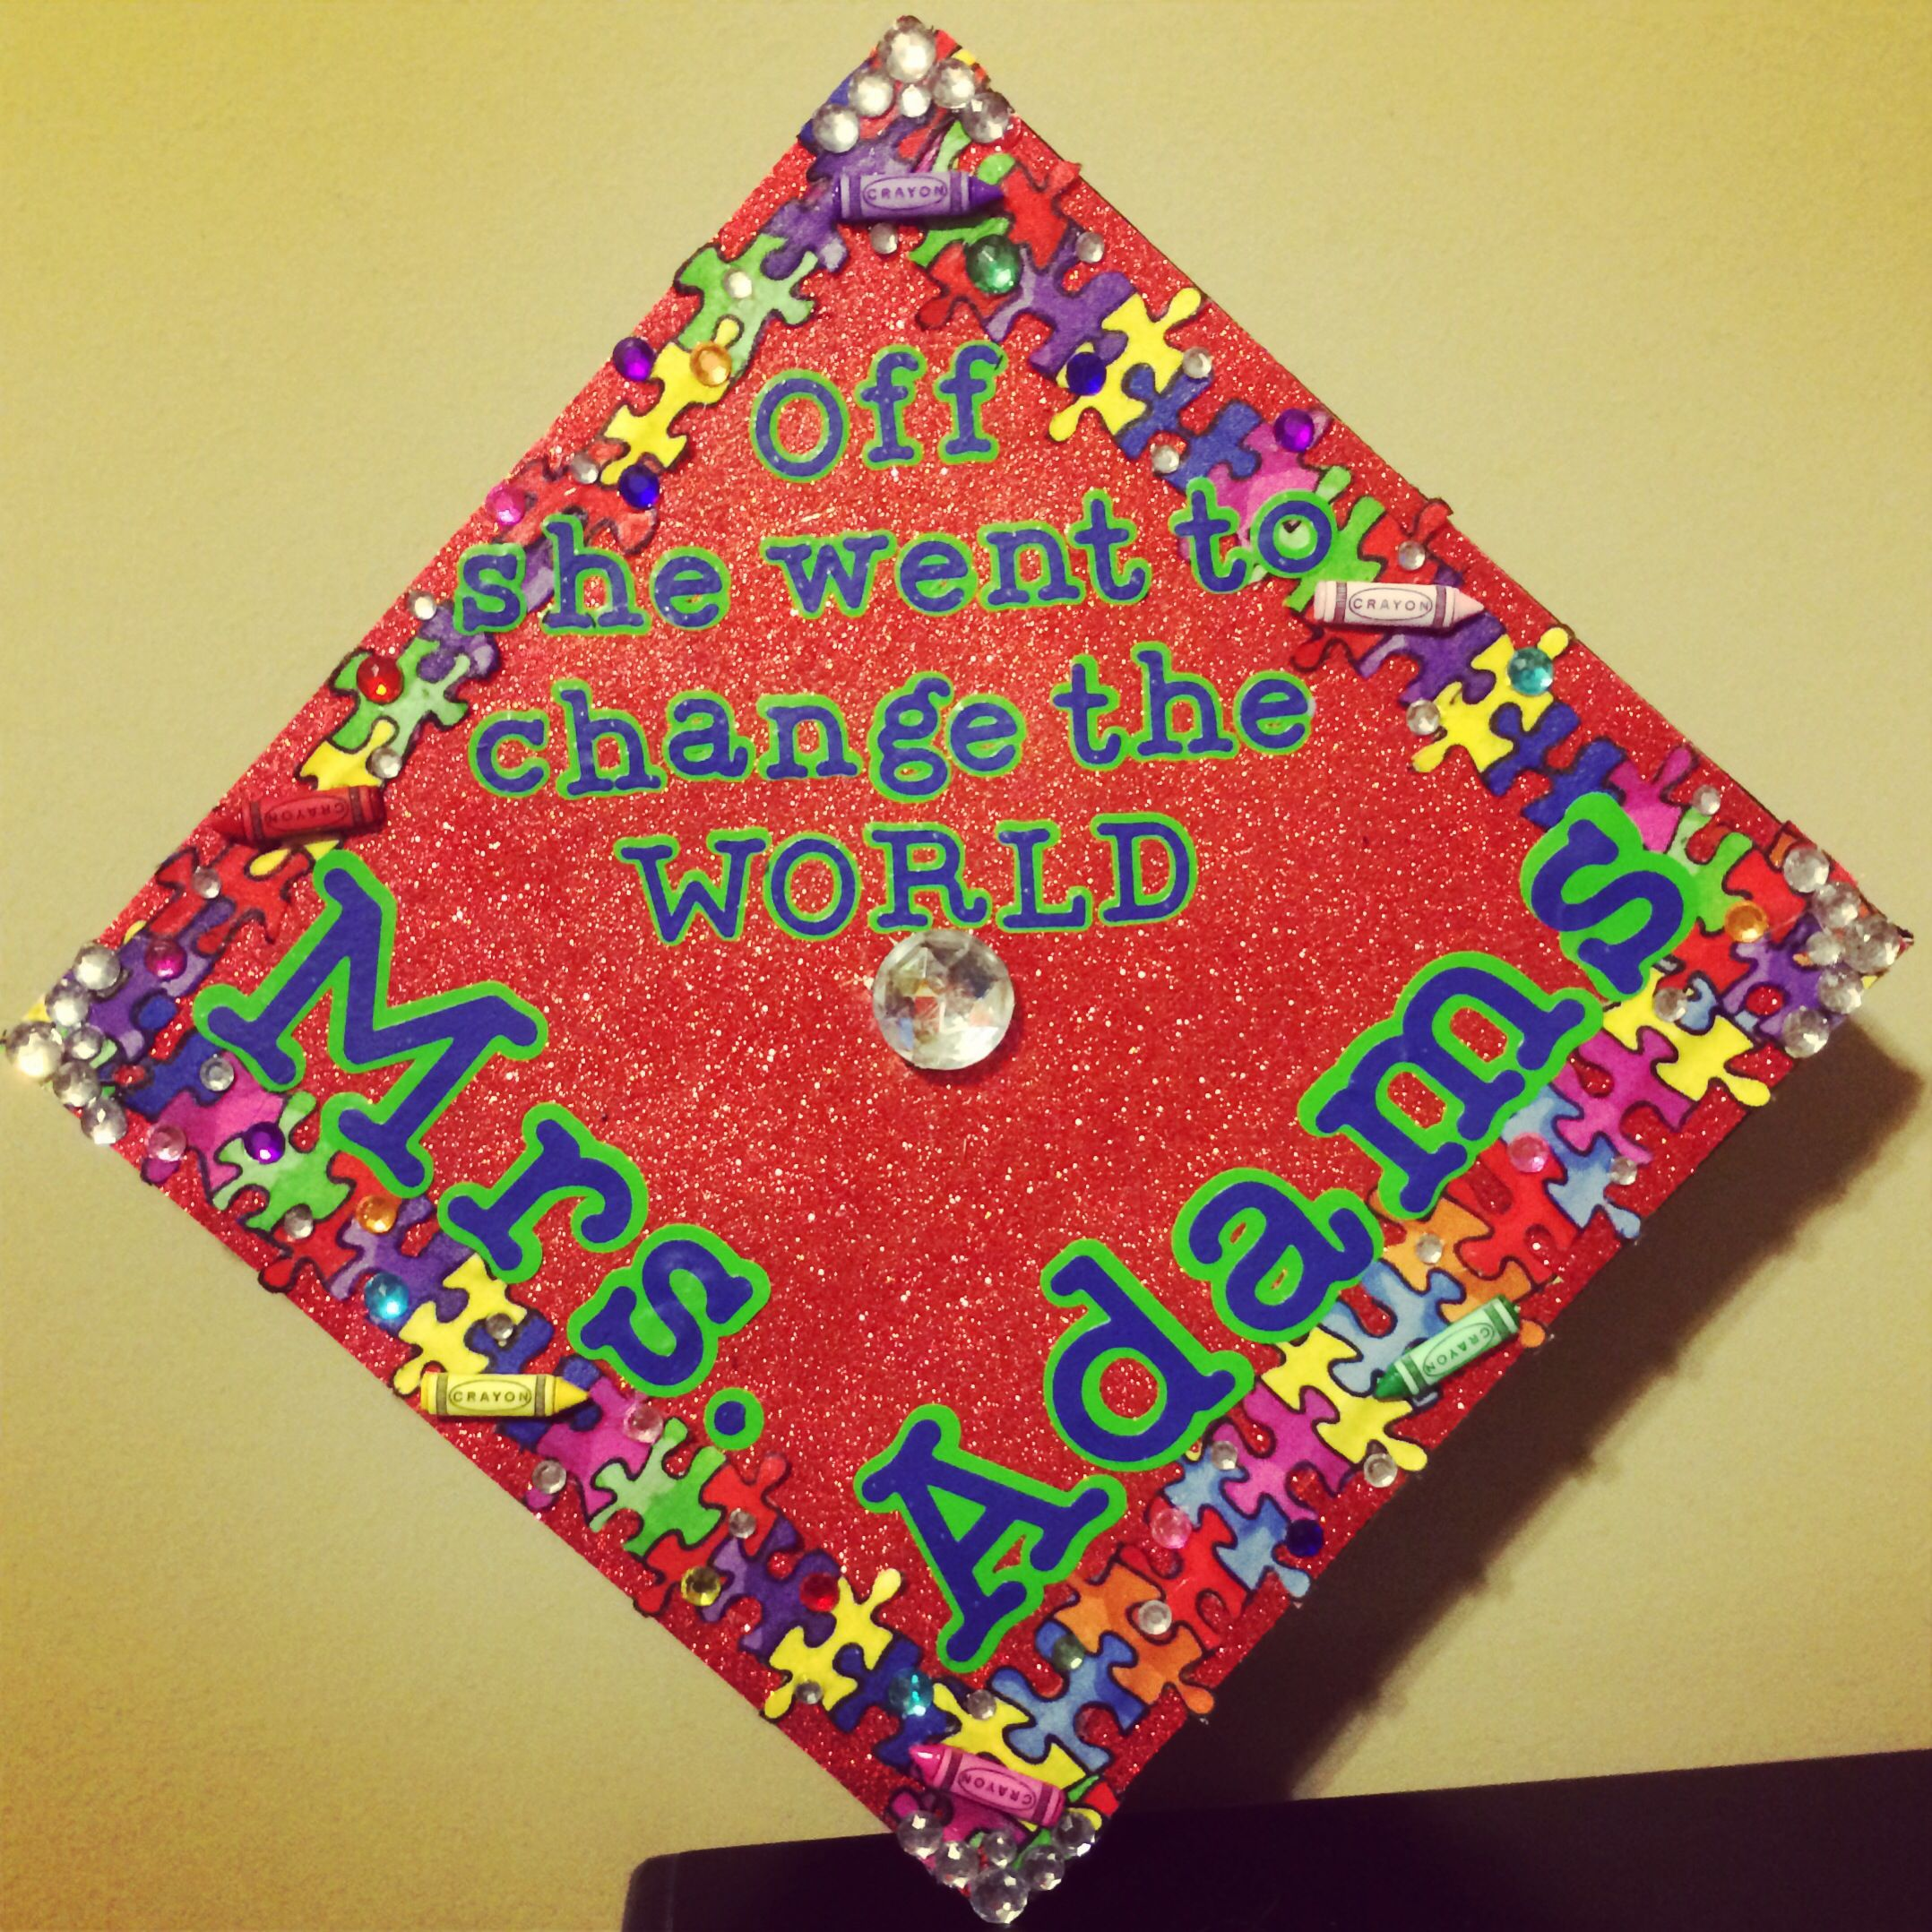 Decorating graduation cap ideas for teachers - Decorated Graduation Cap Teacher Special Education